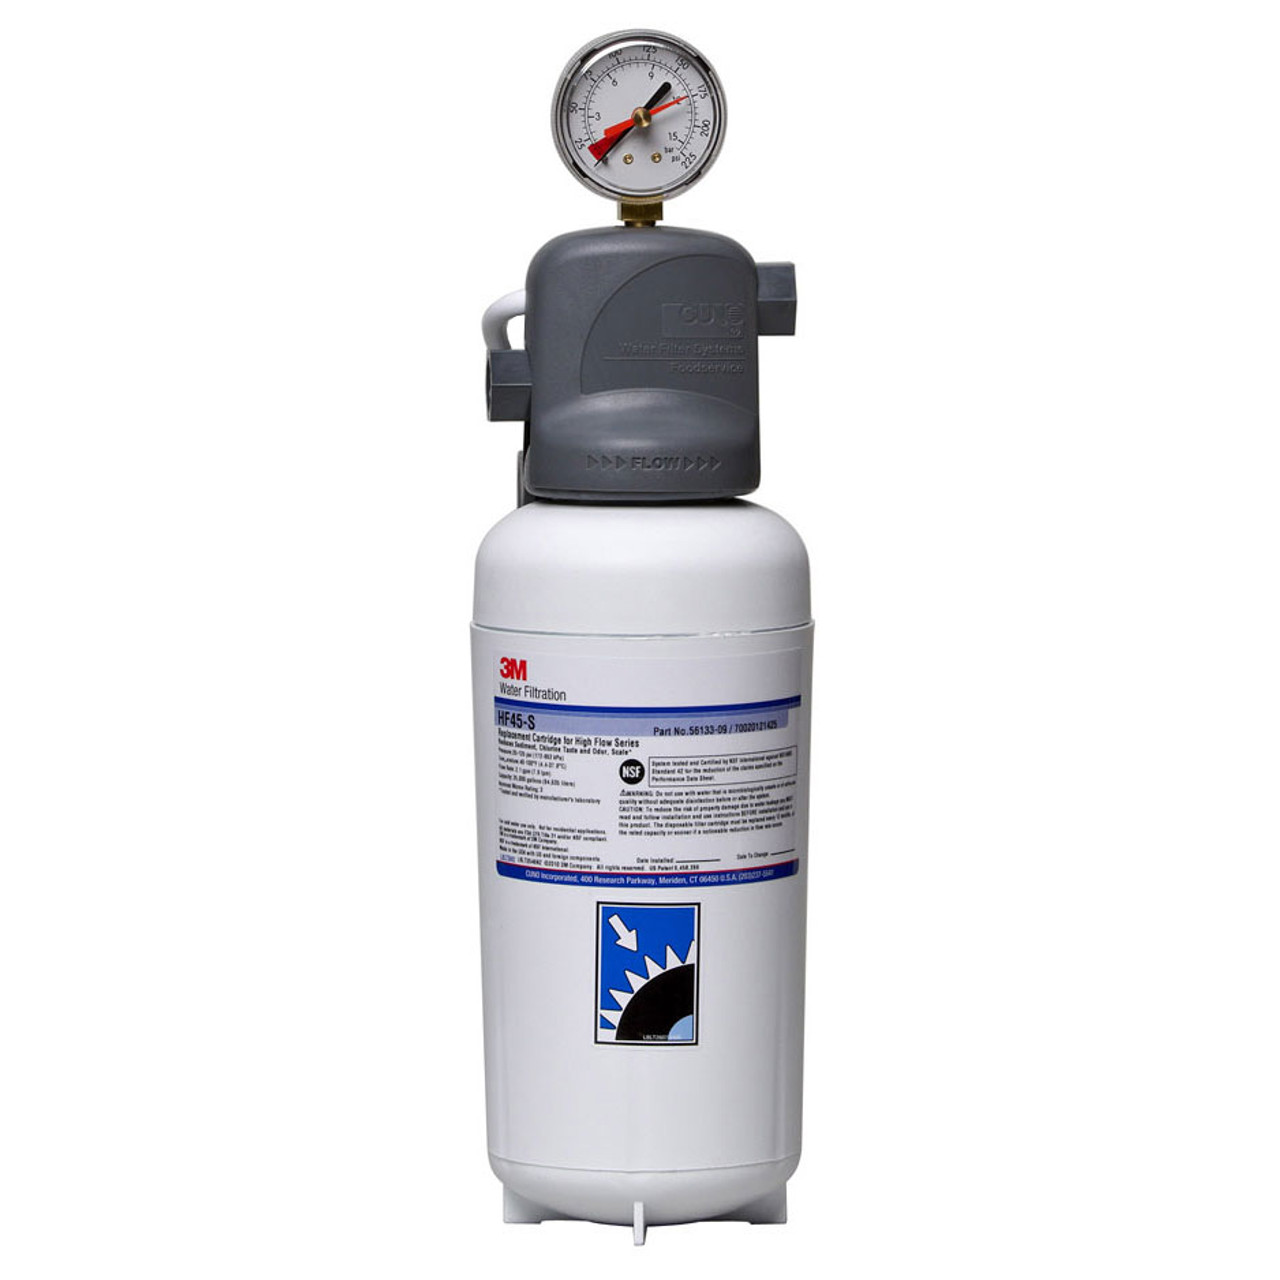 3M ICE145-S Ice Filtration System